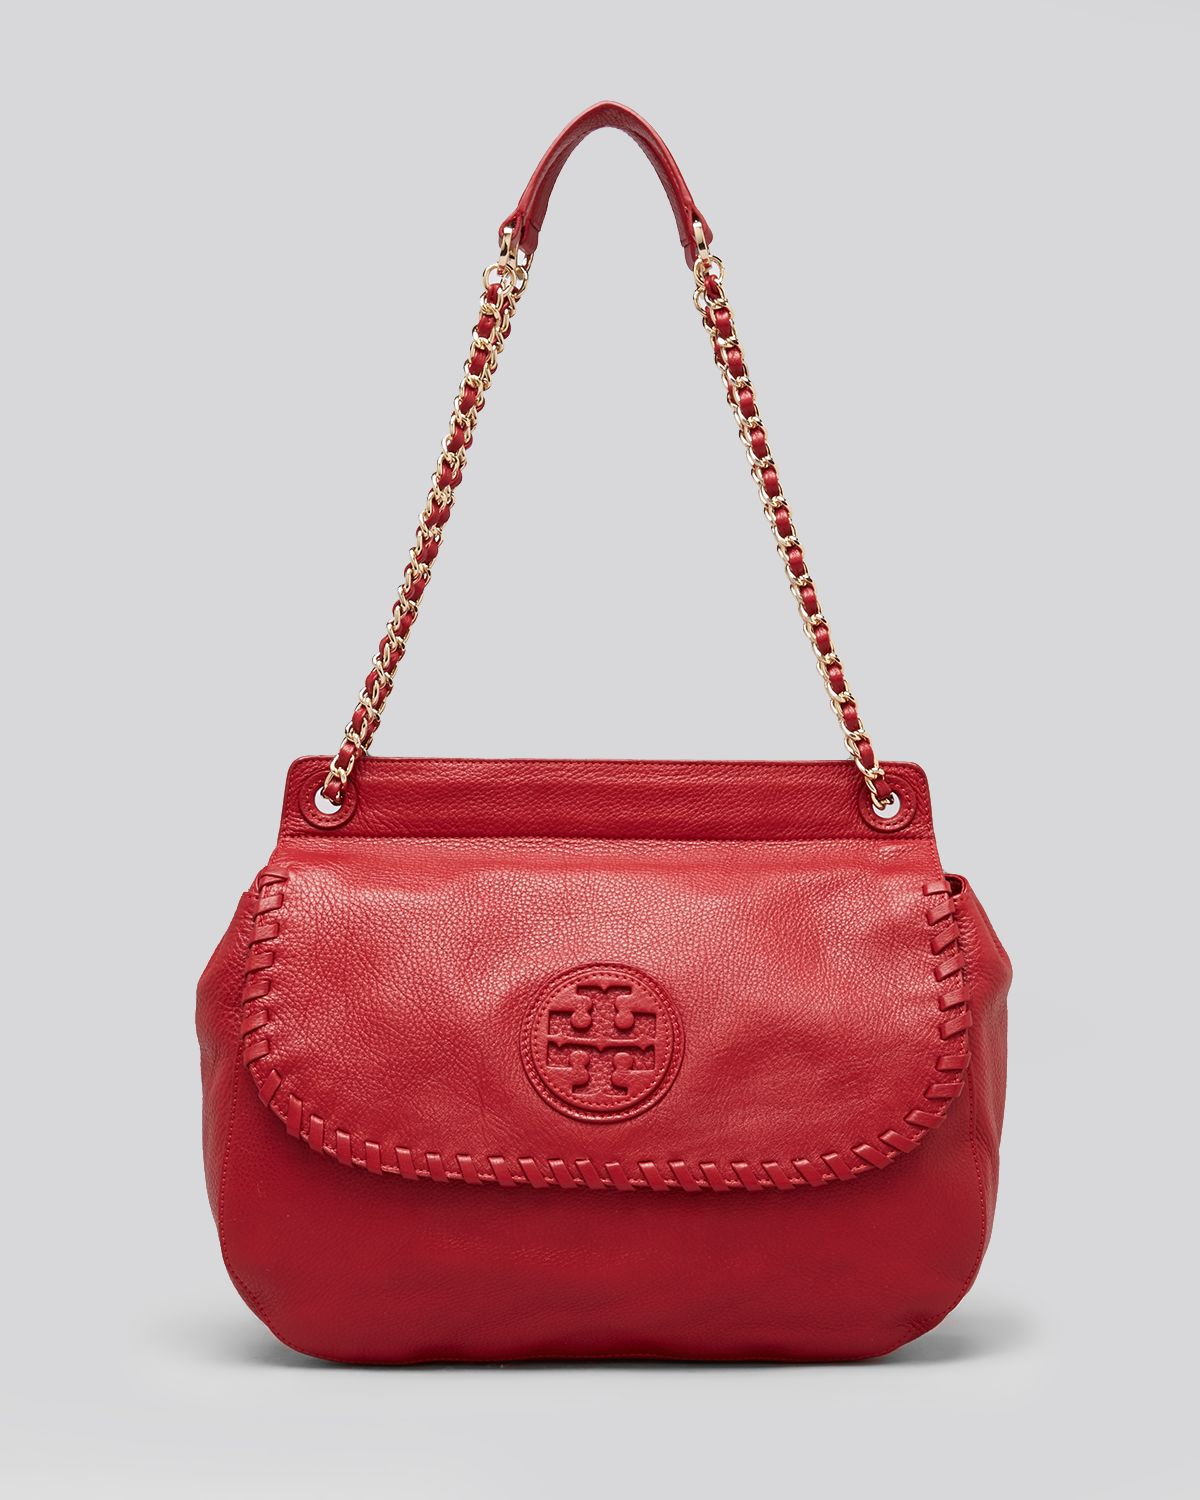 tory burch crossbody marion saddle bag in red rouge red